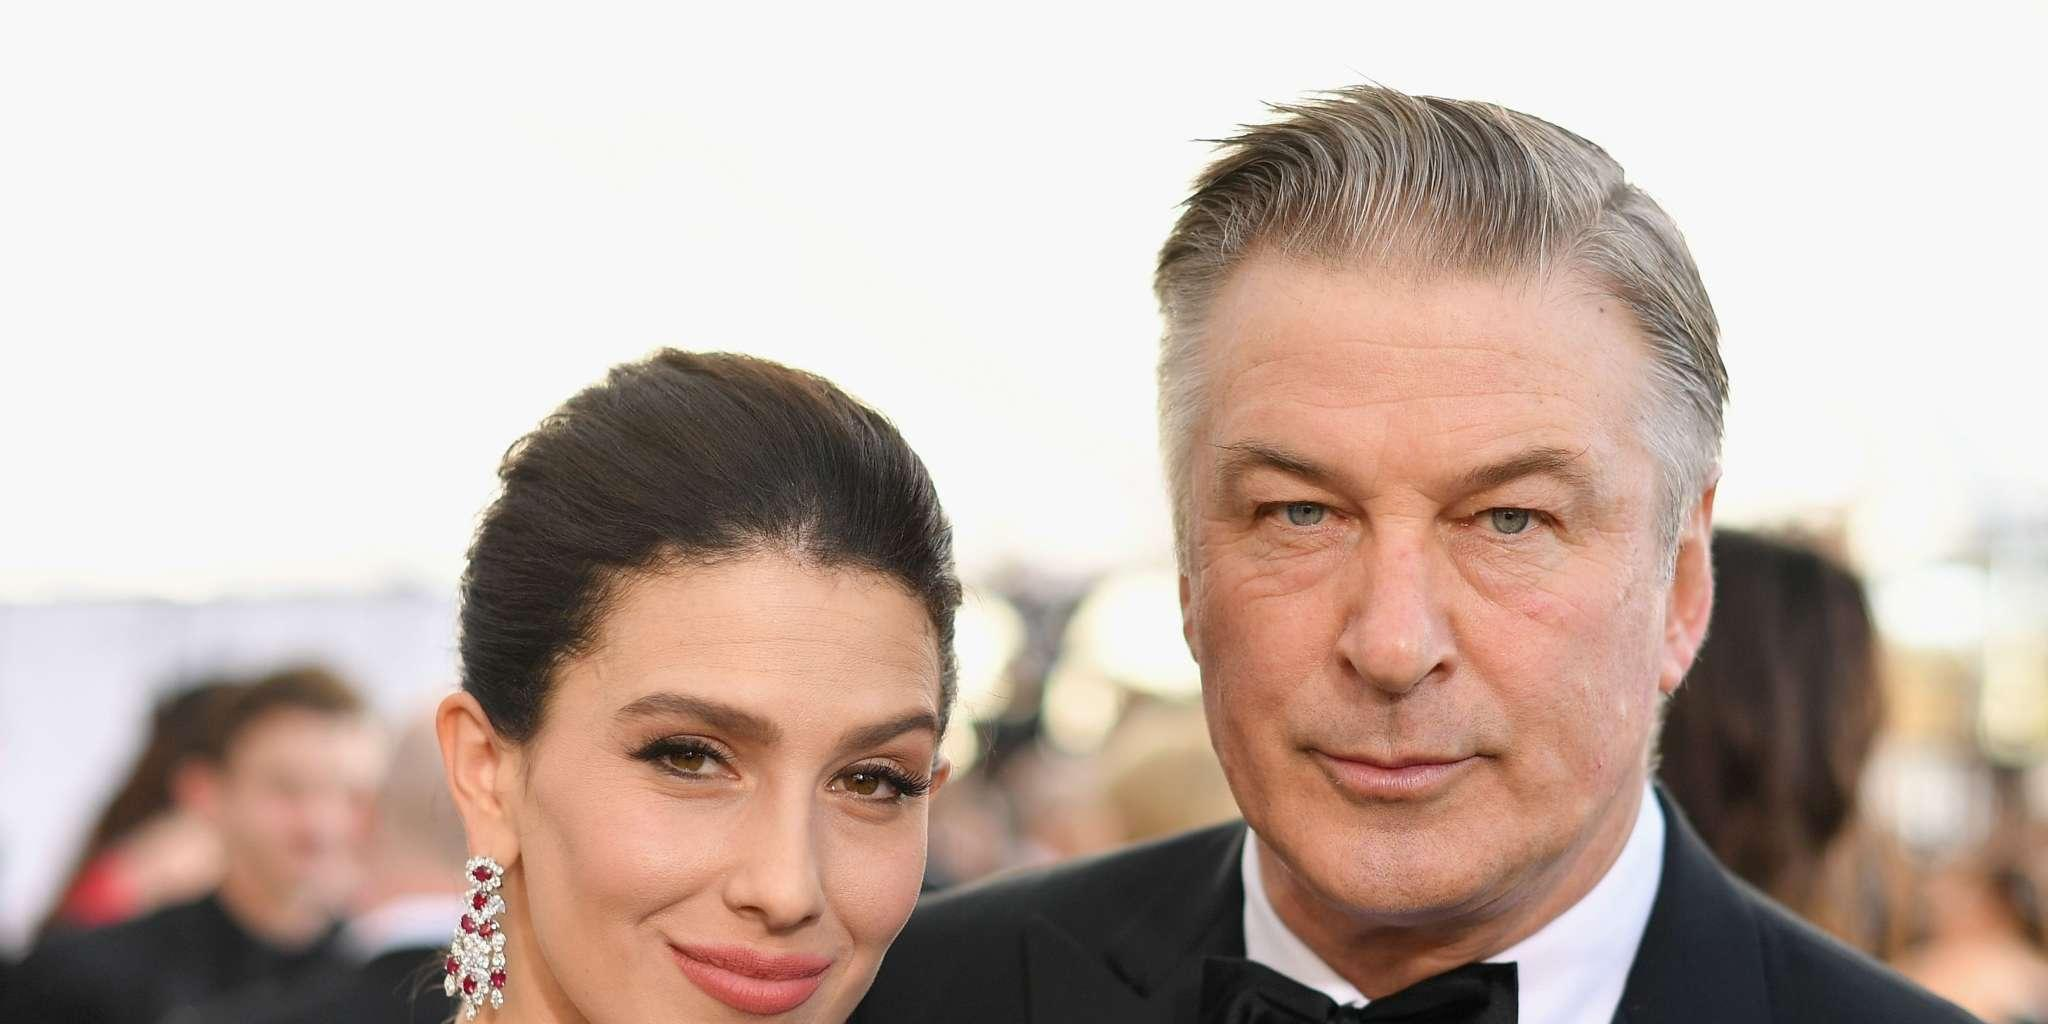 Hilaria And Alec Baldwin Welcome Their 5th Baby - Find Out The Gender And More!